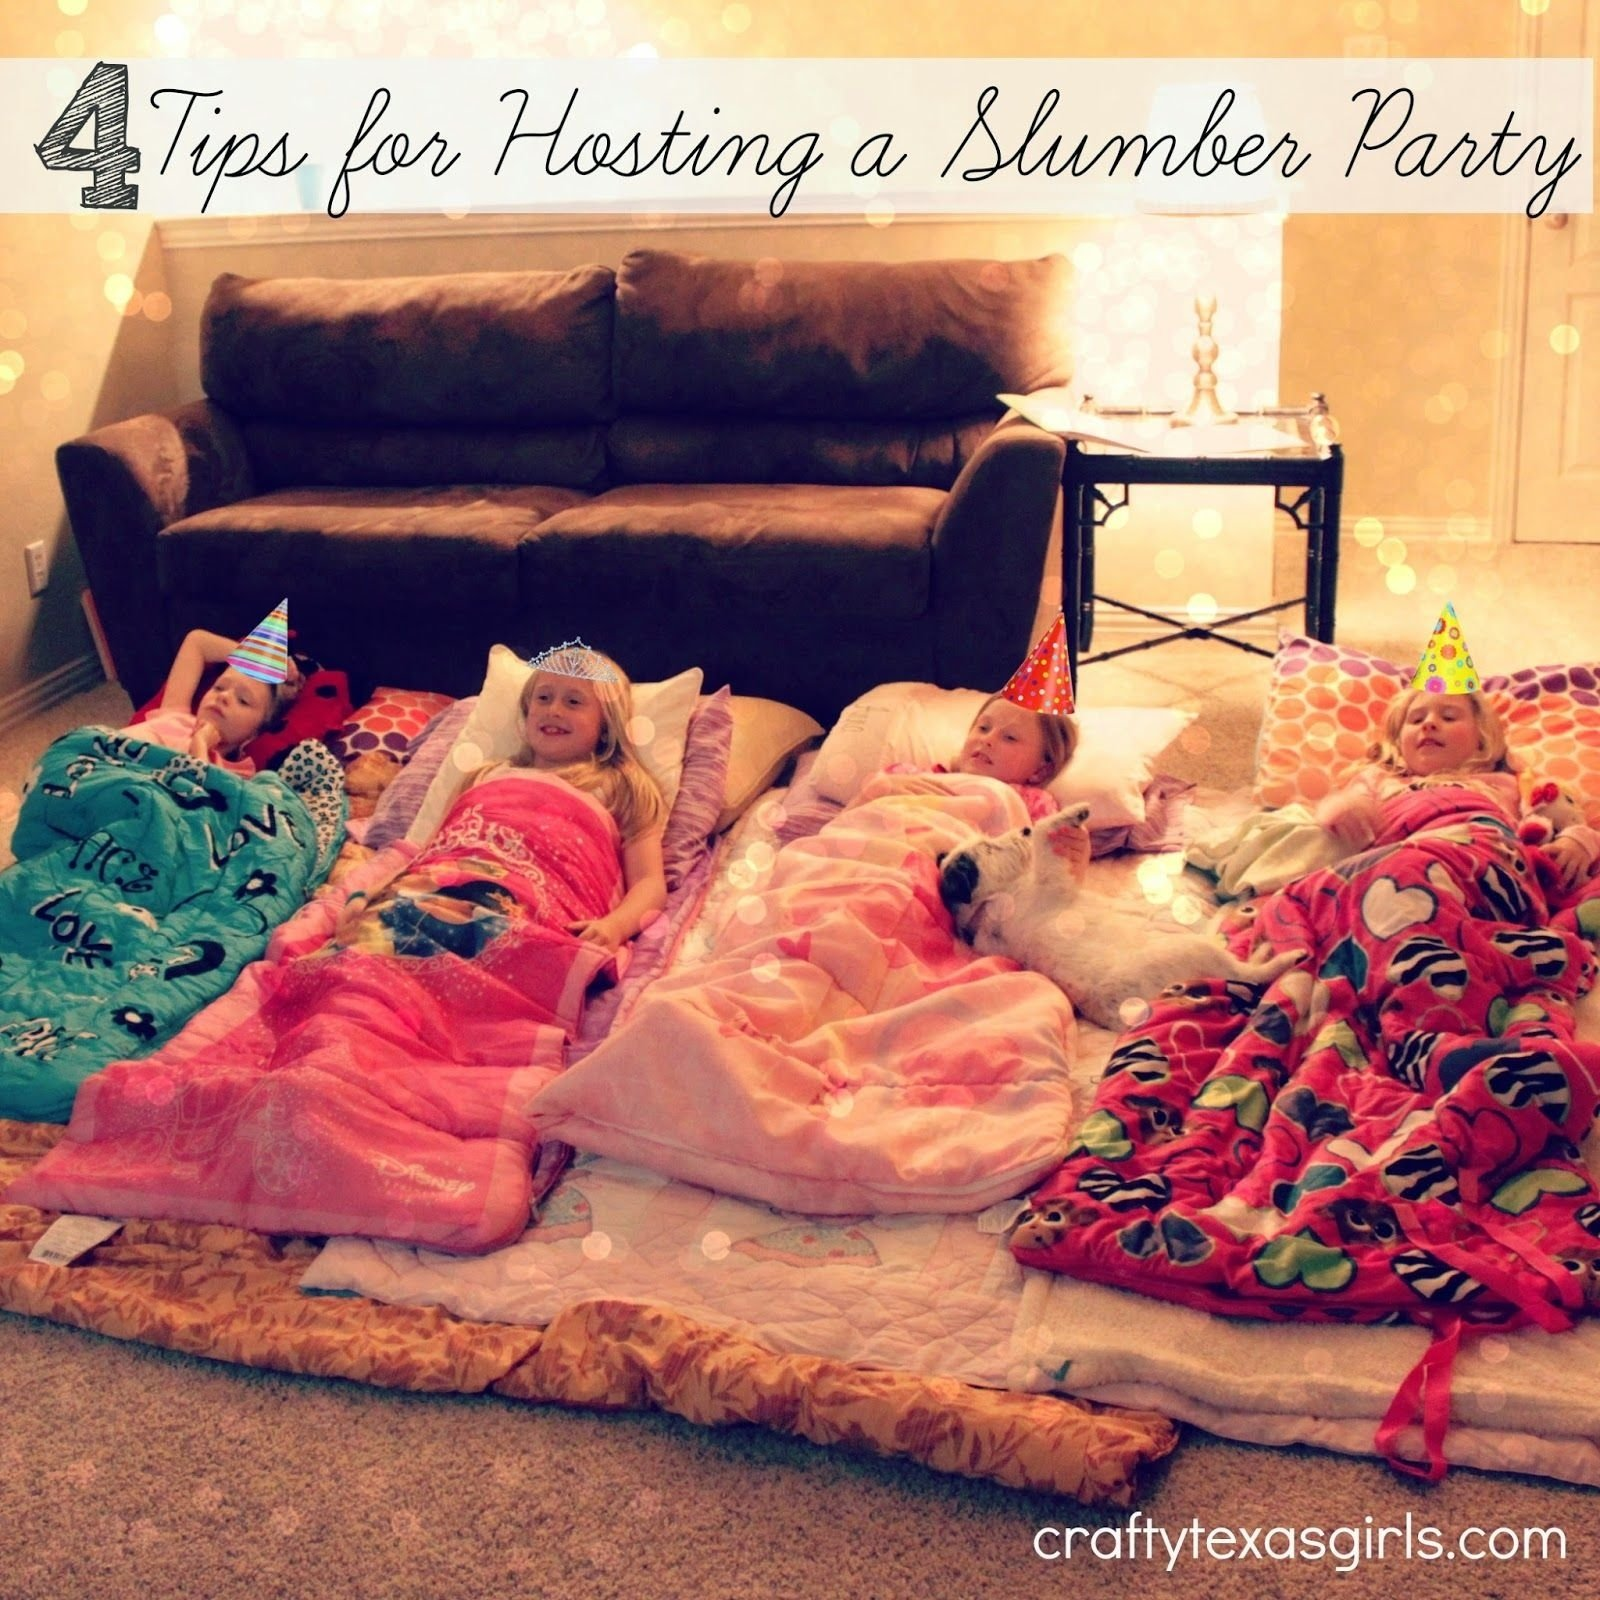 10 Most Recommended Ideas For A Slumber Party 4 tips for hosting a slumber party for the girls pinterest 2020